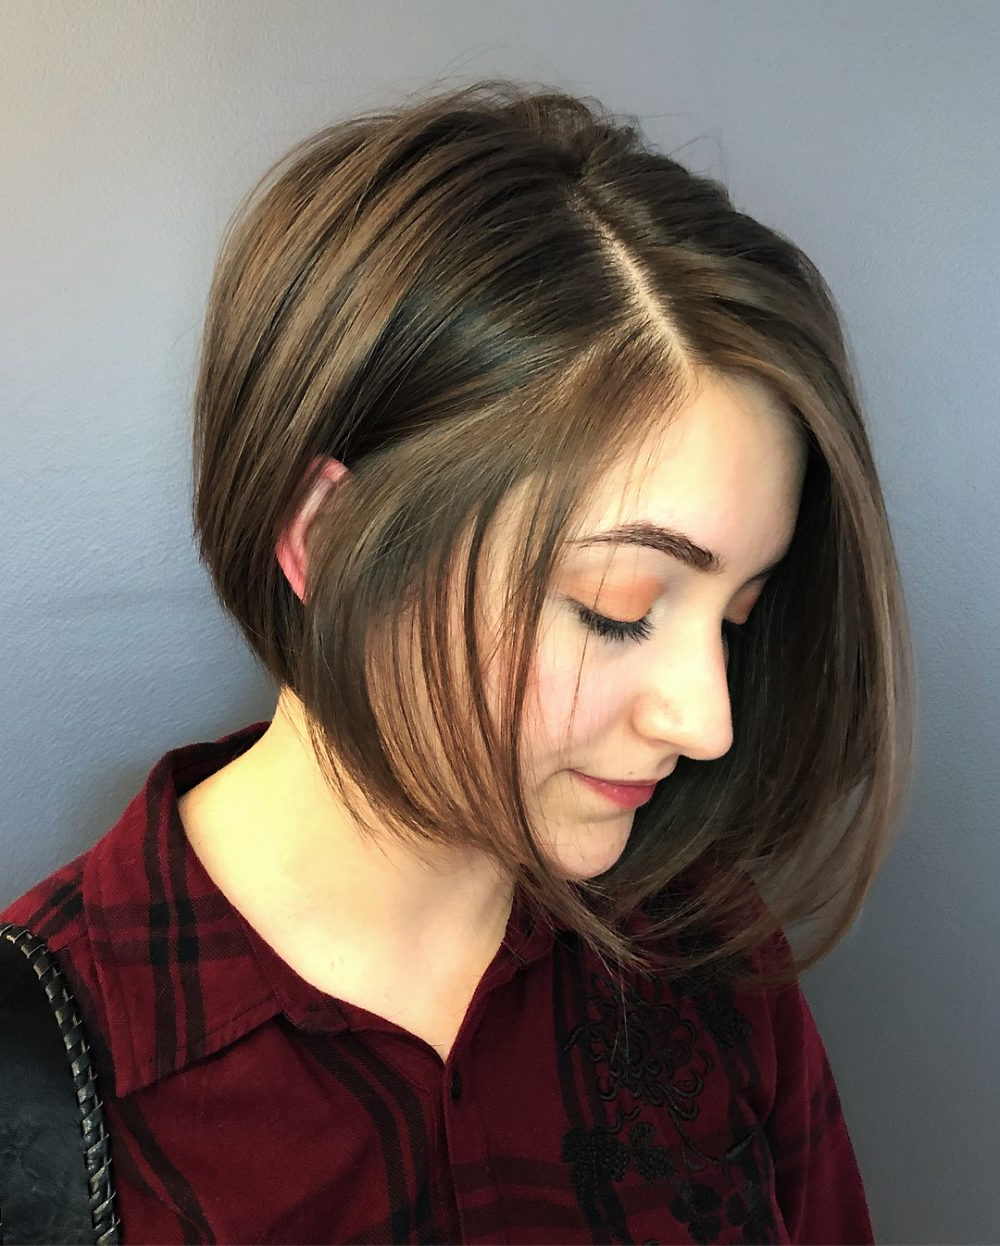 33 Flattering Short Hairstyles For Round Faces In 2018 With Regard To Short Haircuts For Round Faces And Curly Hair (View 16 of 25)